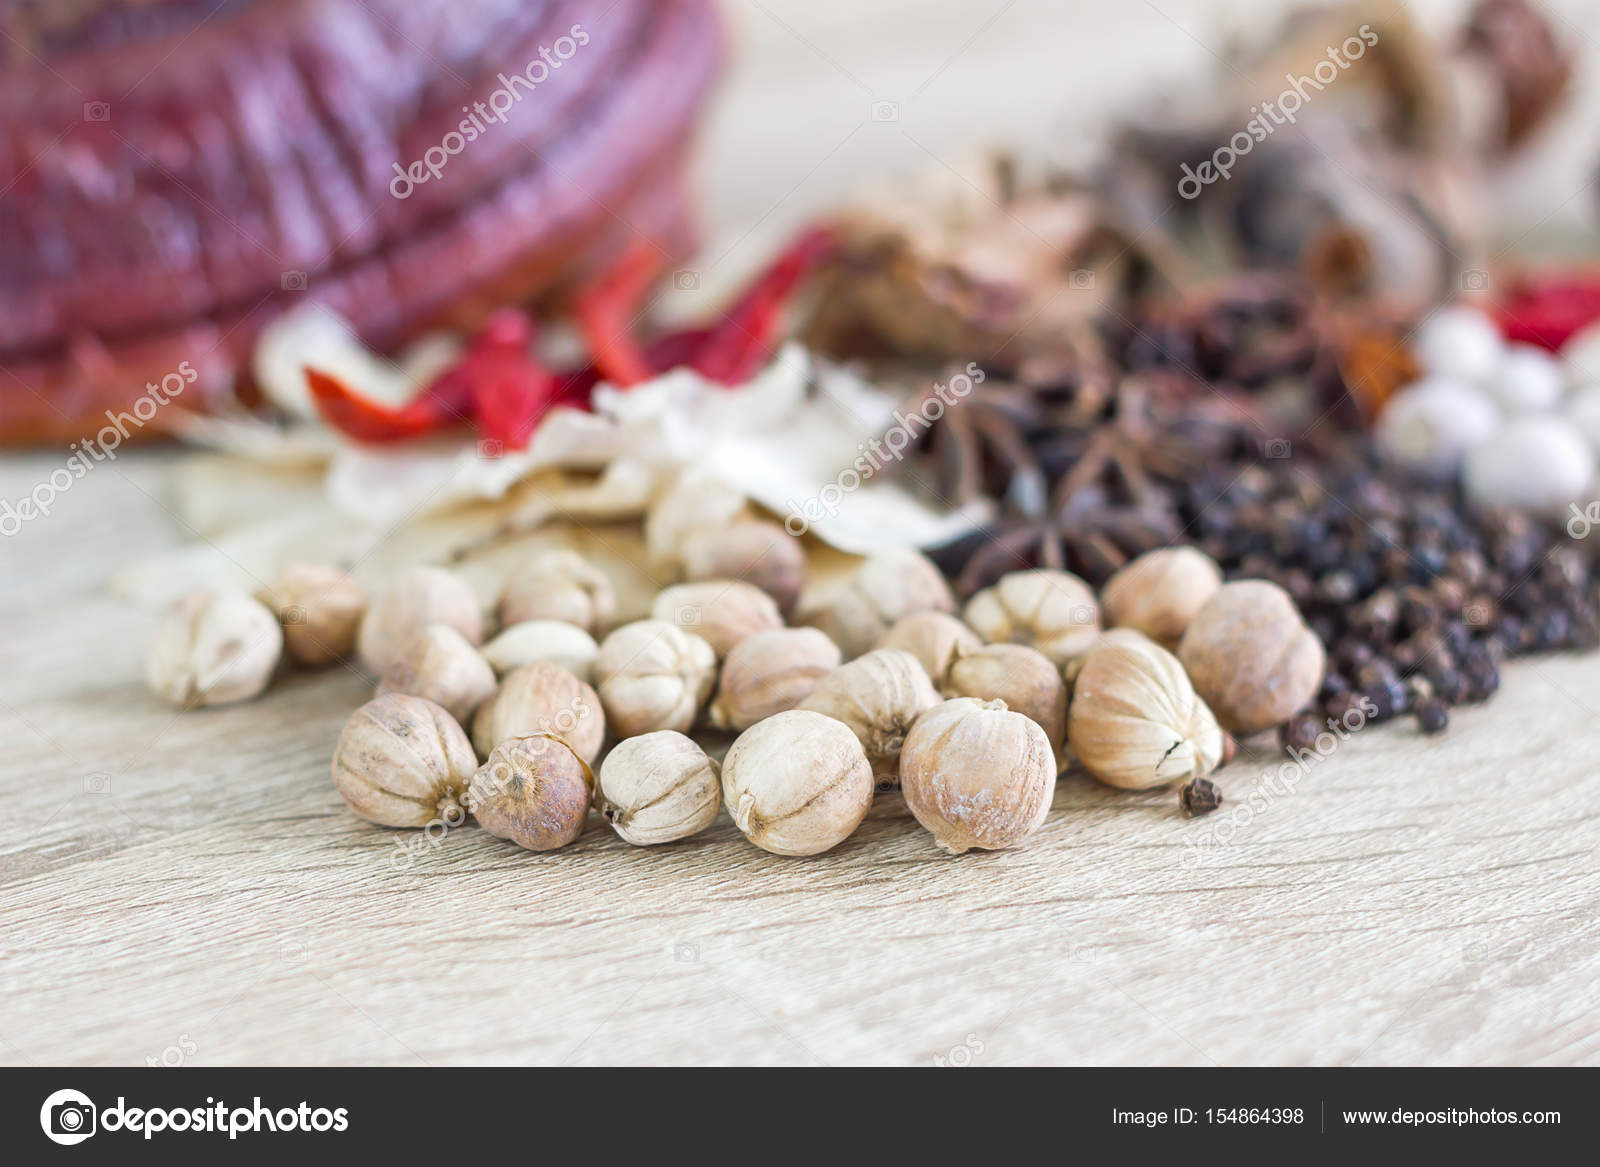 Healthy thai food recipes concept stock photo stoonn 154864398 asian food recipes with ingredients on wood table healthy cooking concept photo by stoonn forumfinder Image collections